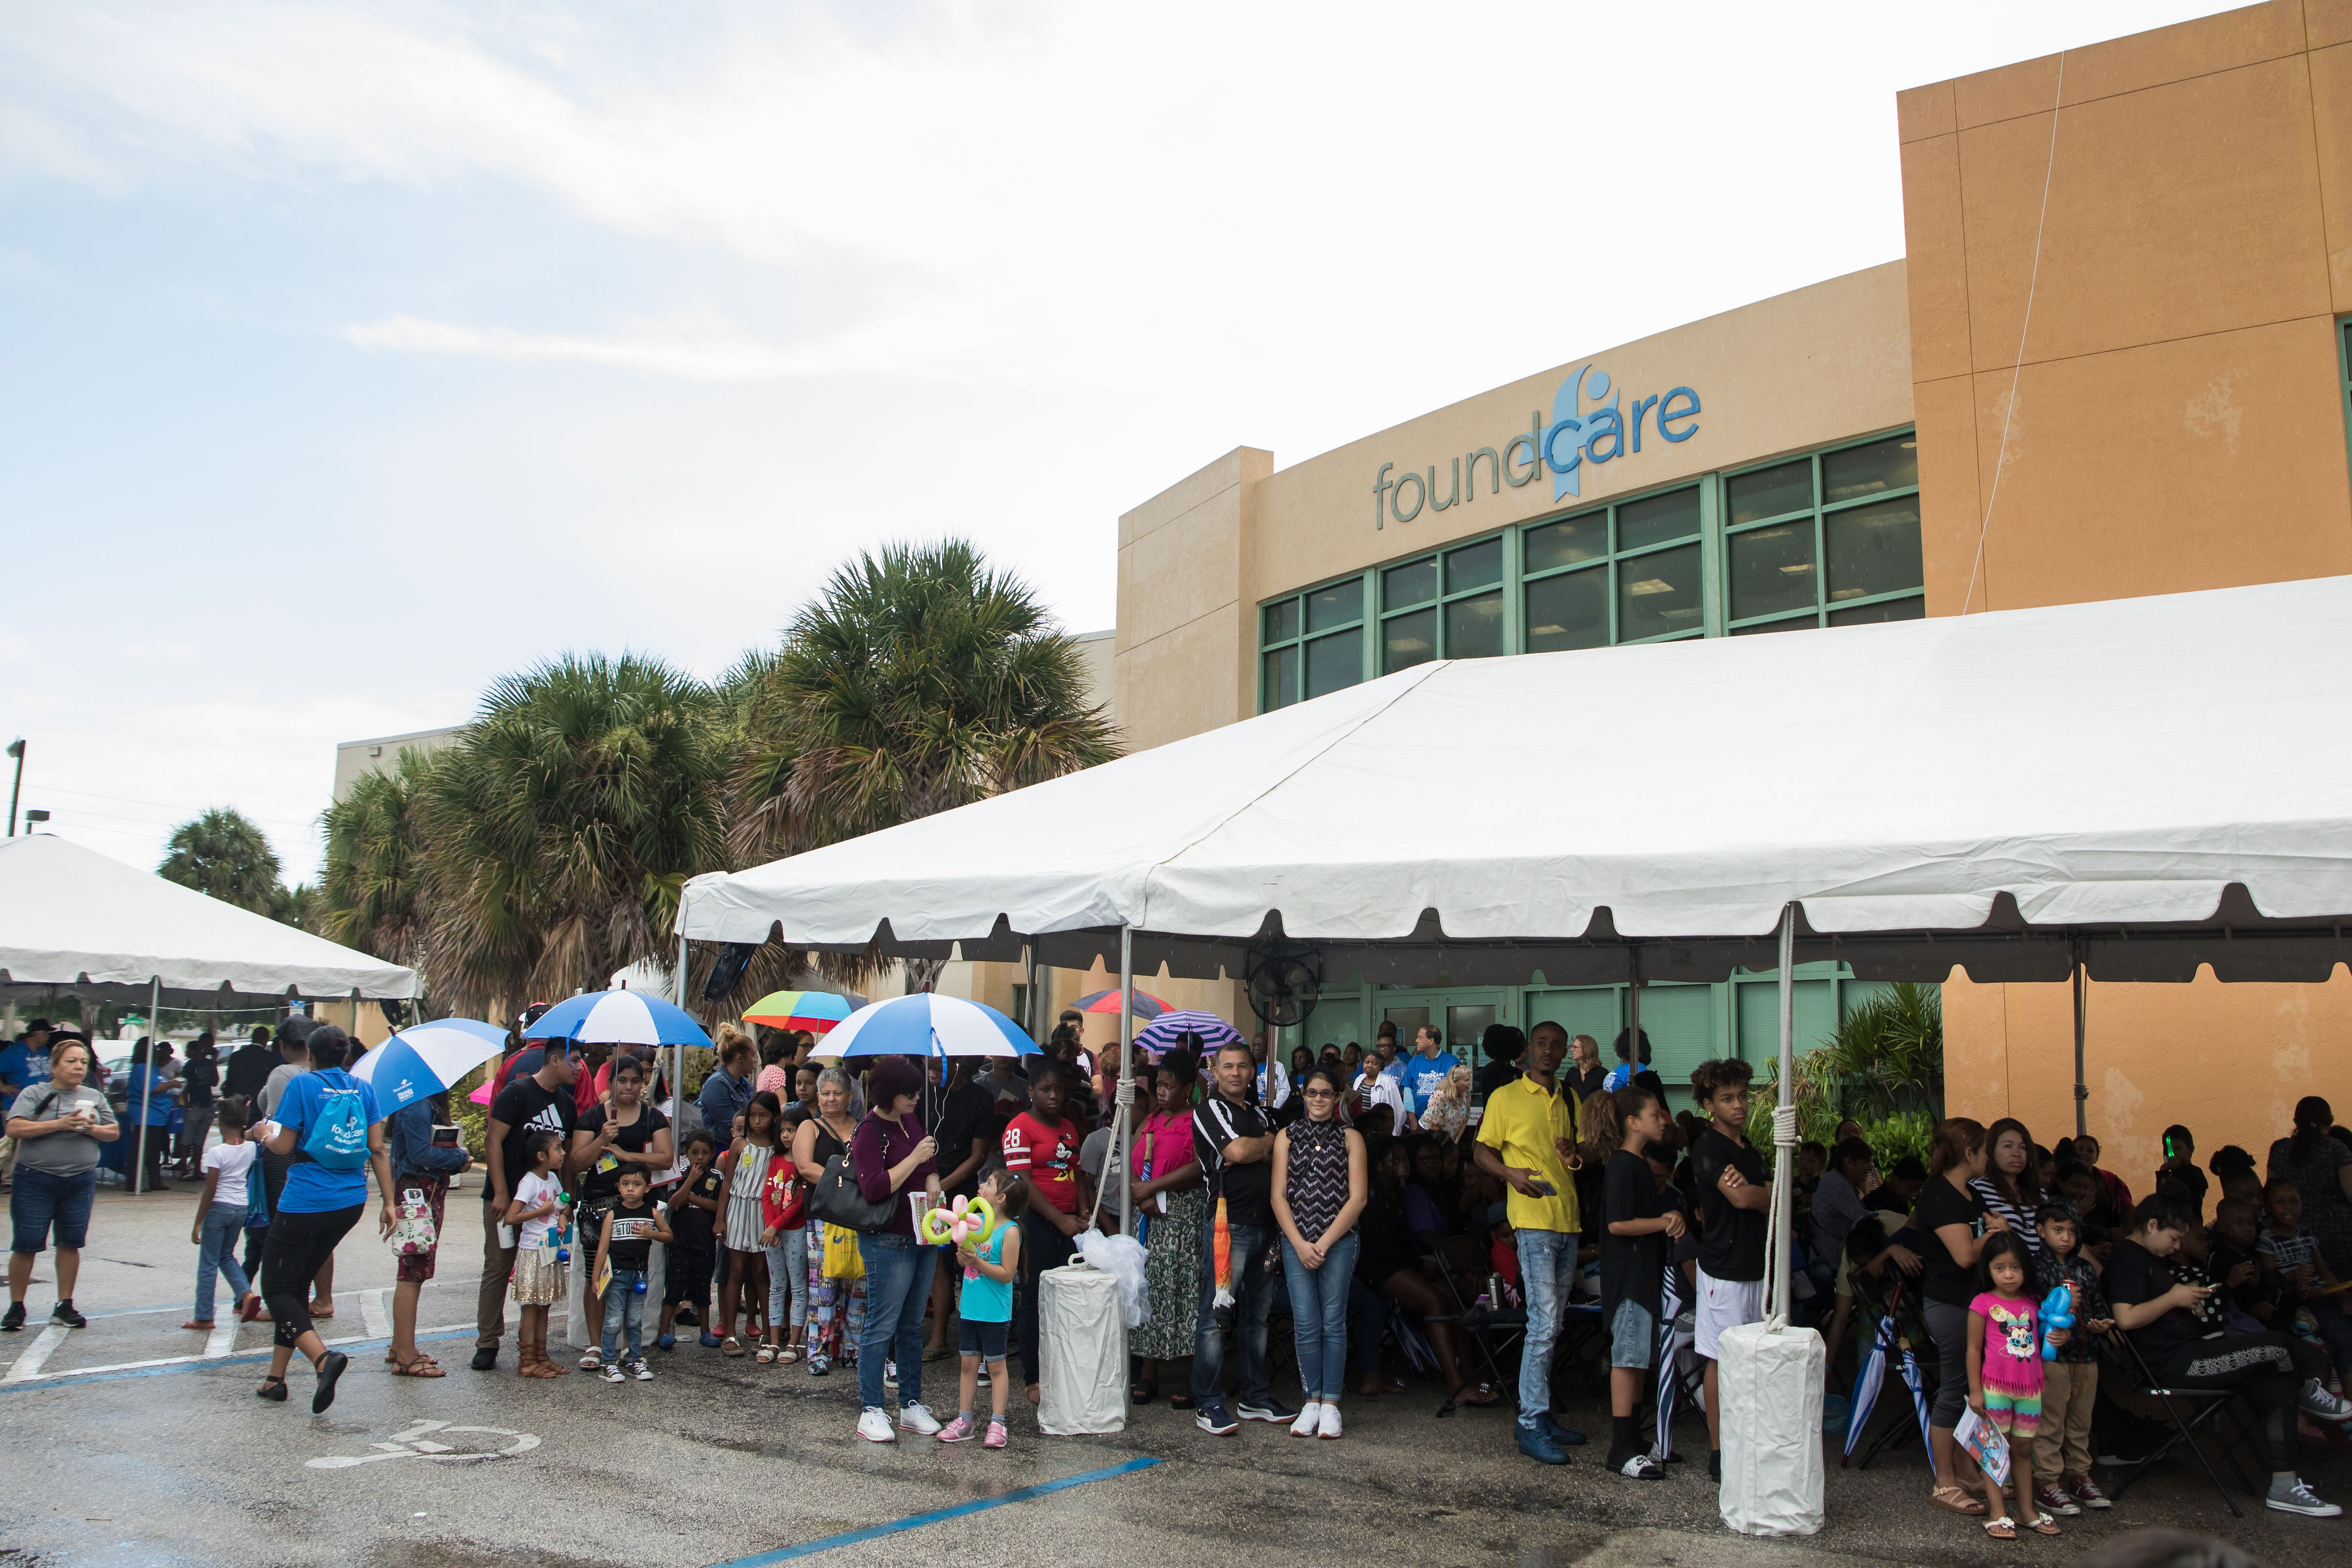 FoundCare's Back-to-School Health Fair Brought Sunshine on a Rainy Day